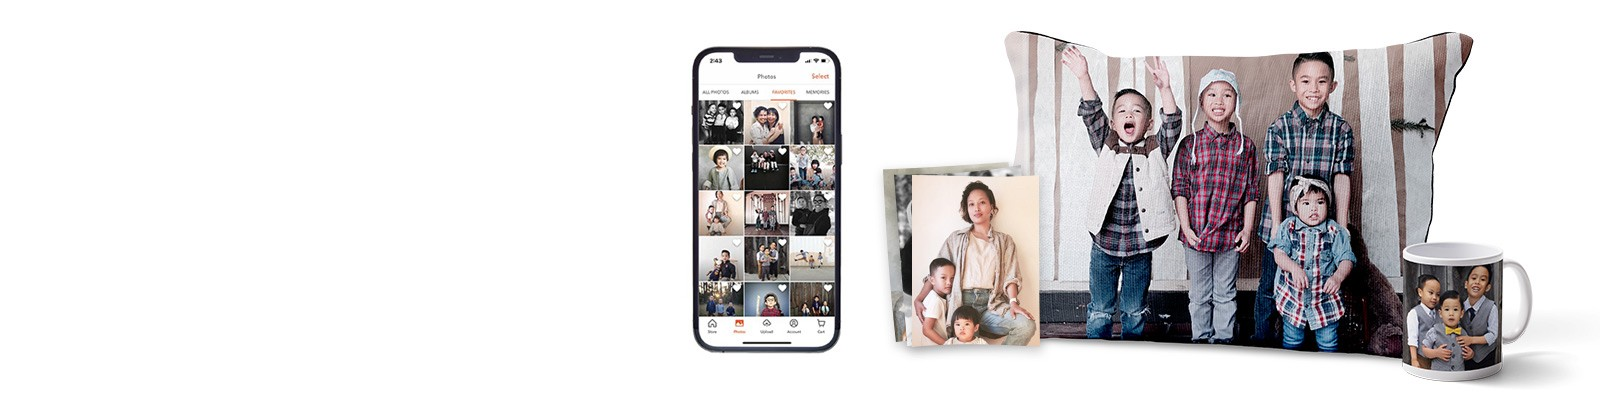 Free Unlimited Photo Storage From Shutterfly